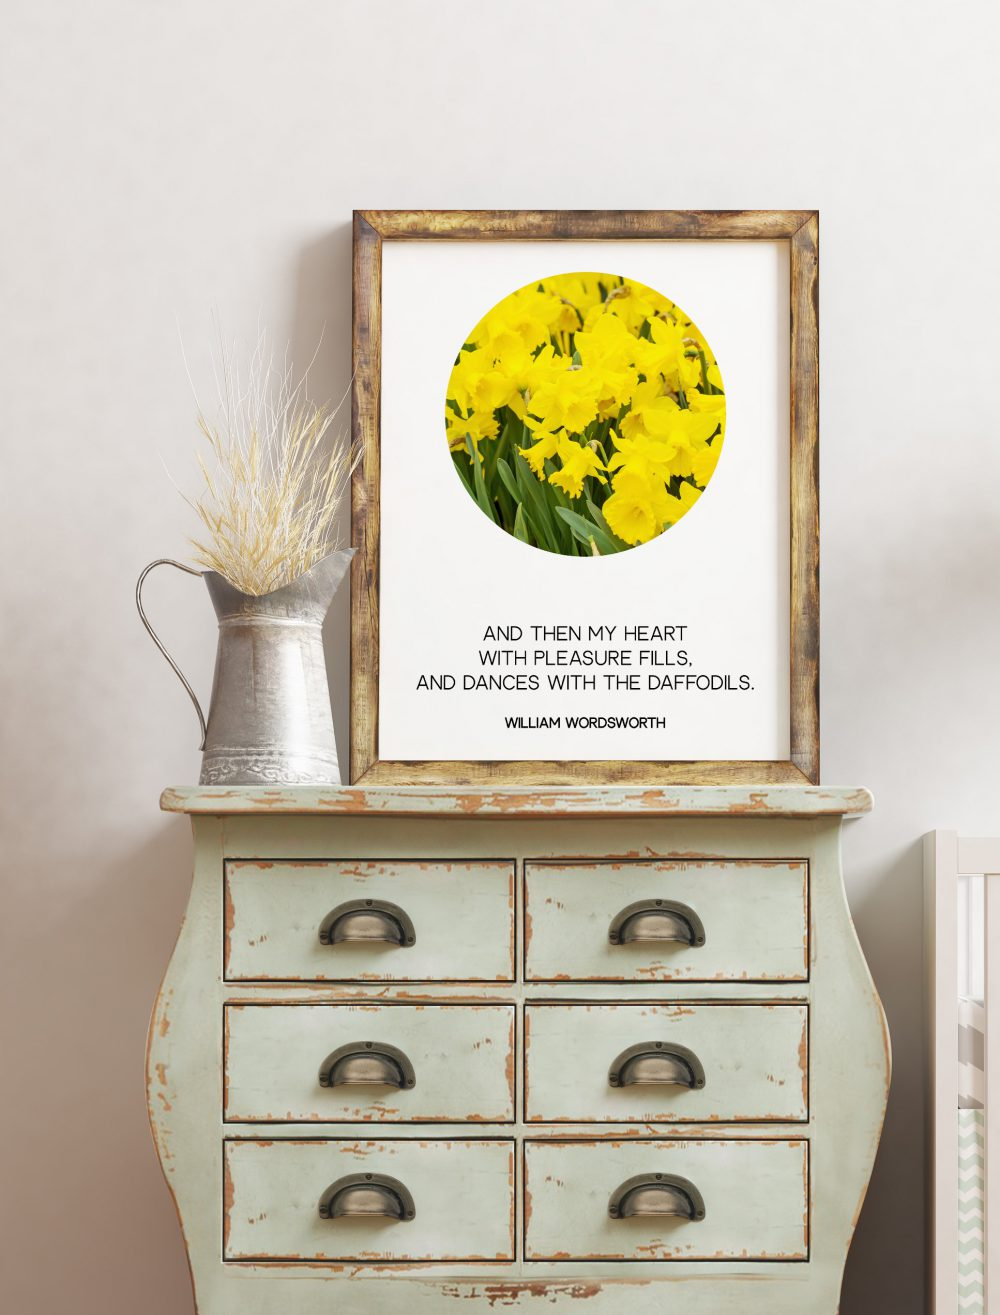 William Wordsworth Daffodils Poem - I Wandered Lonely as a Cloud Art Print | Daffodils Photo | Inspirational Poem | Poetry Wall Art Print